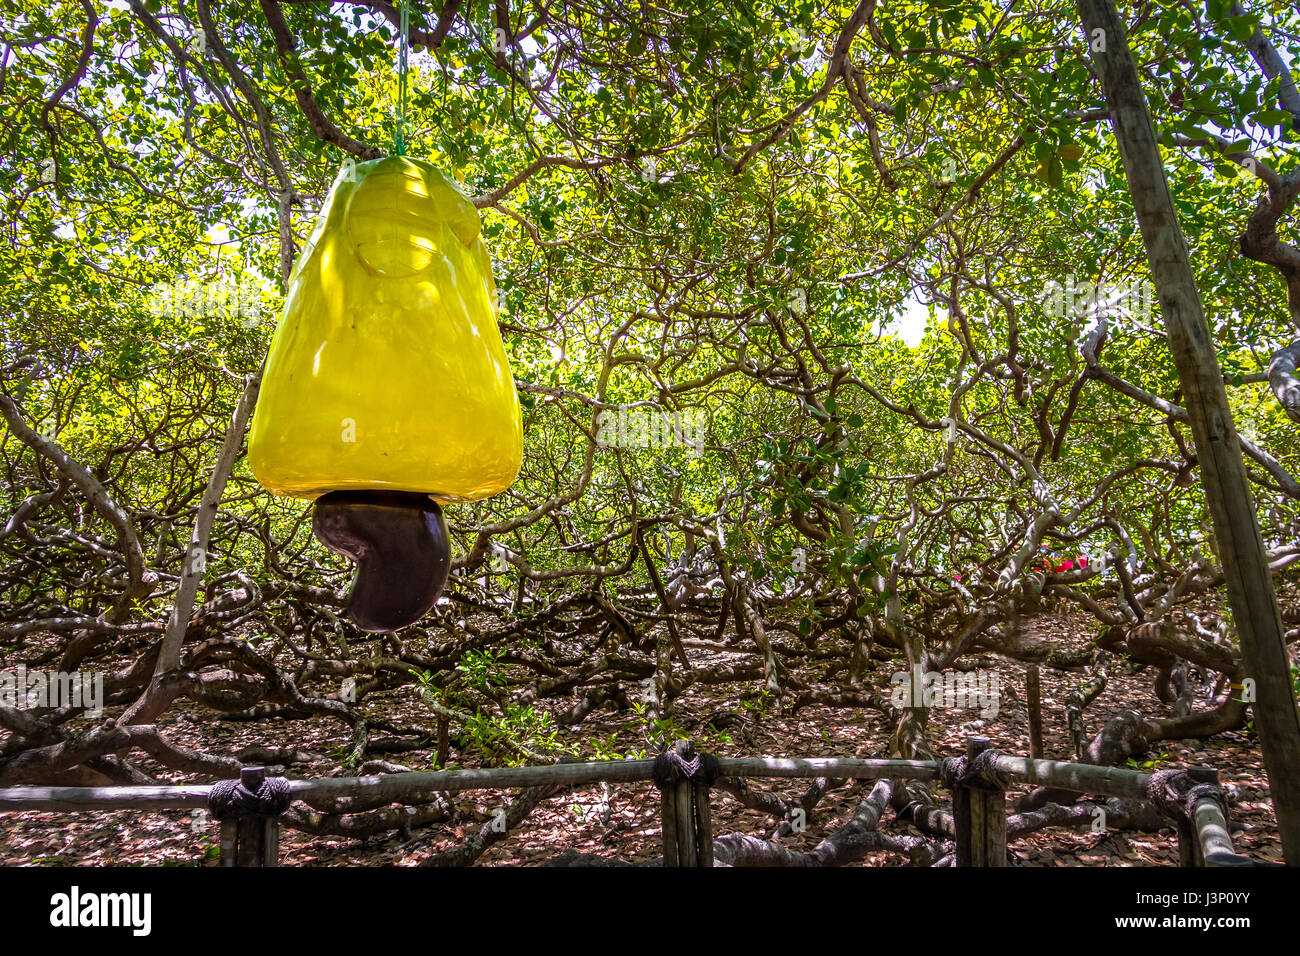 World's Largest Cashew Tree - Pirangi, Rio Grande do Norte, Brazil - Stock Image